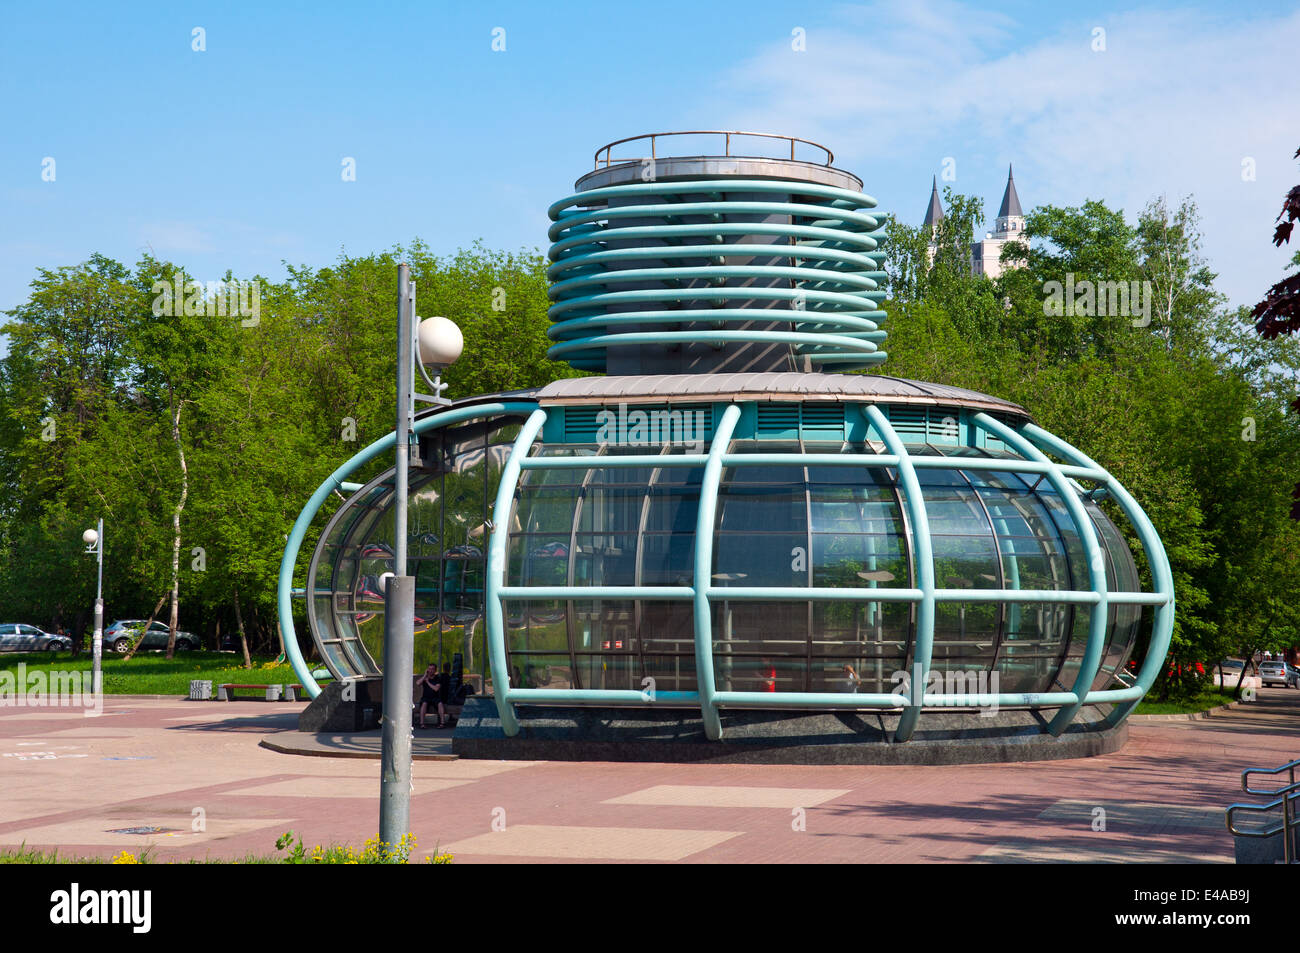 subway Arbat Protection Line moscow lobby Slavic Boulevard Station exit entrance modern architecture deserted blue - Stock Image